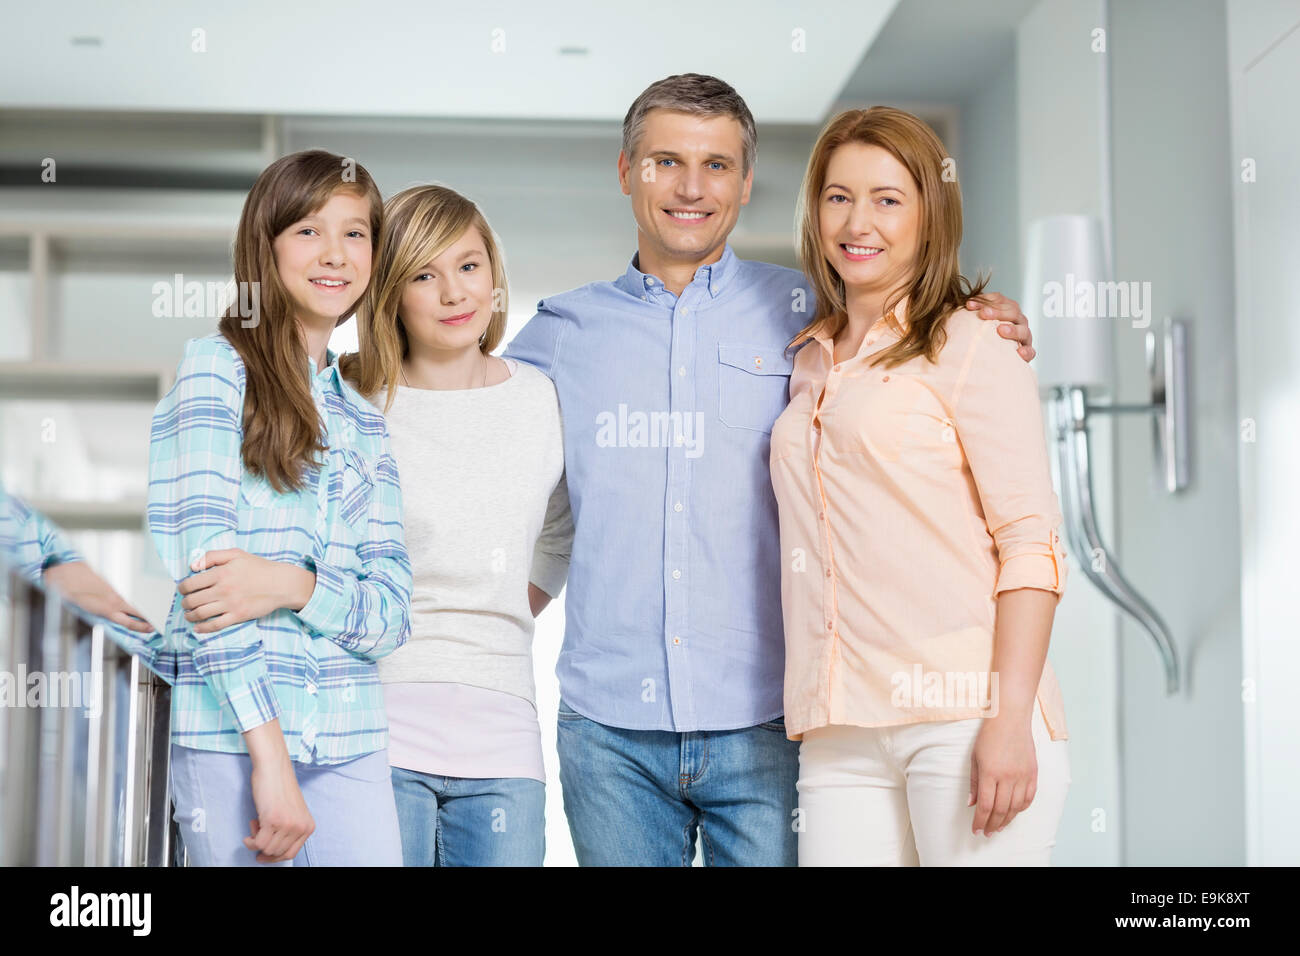 Portrait of happy parents with daughters standing together at home - Stock Image